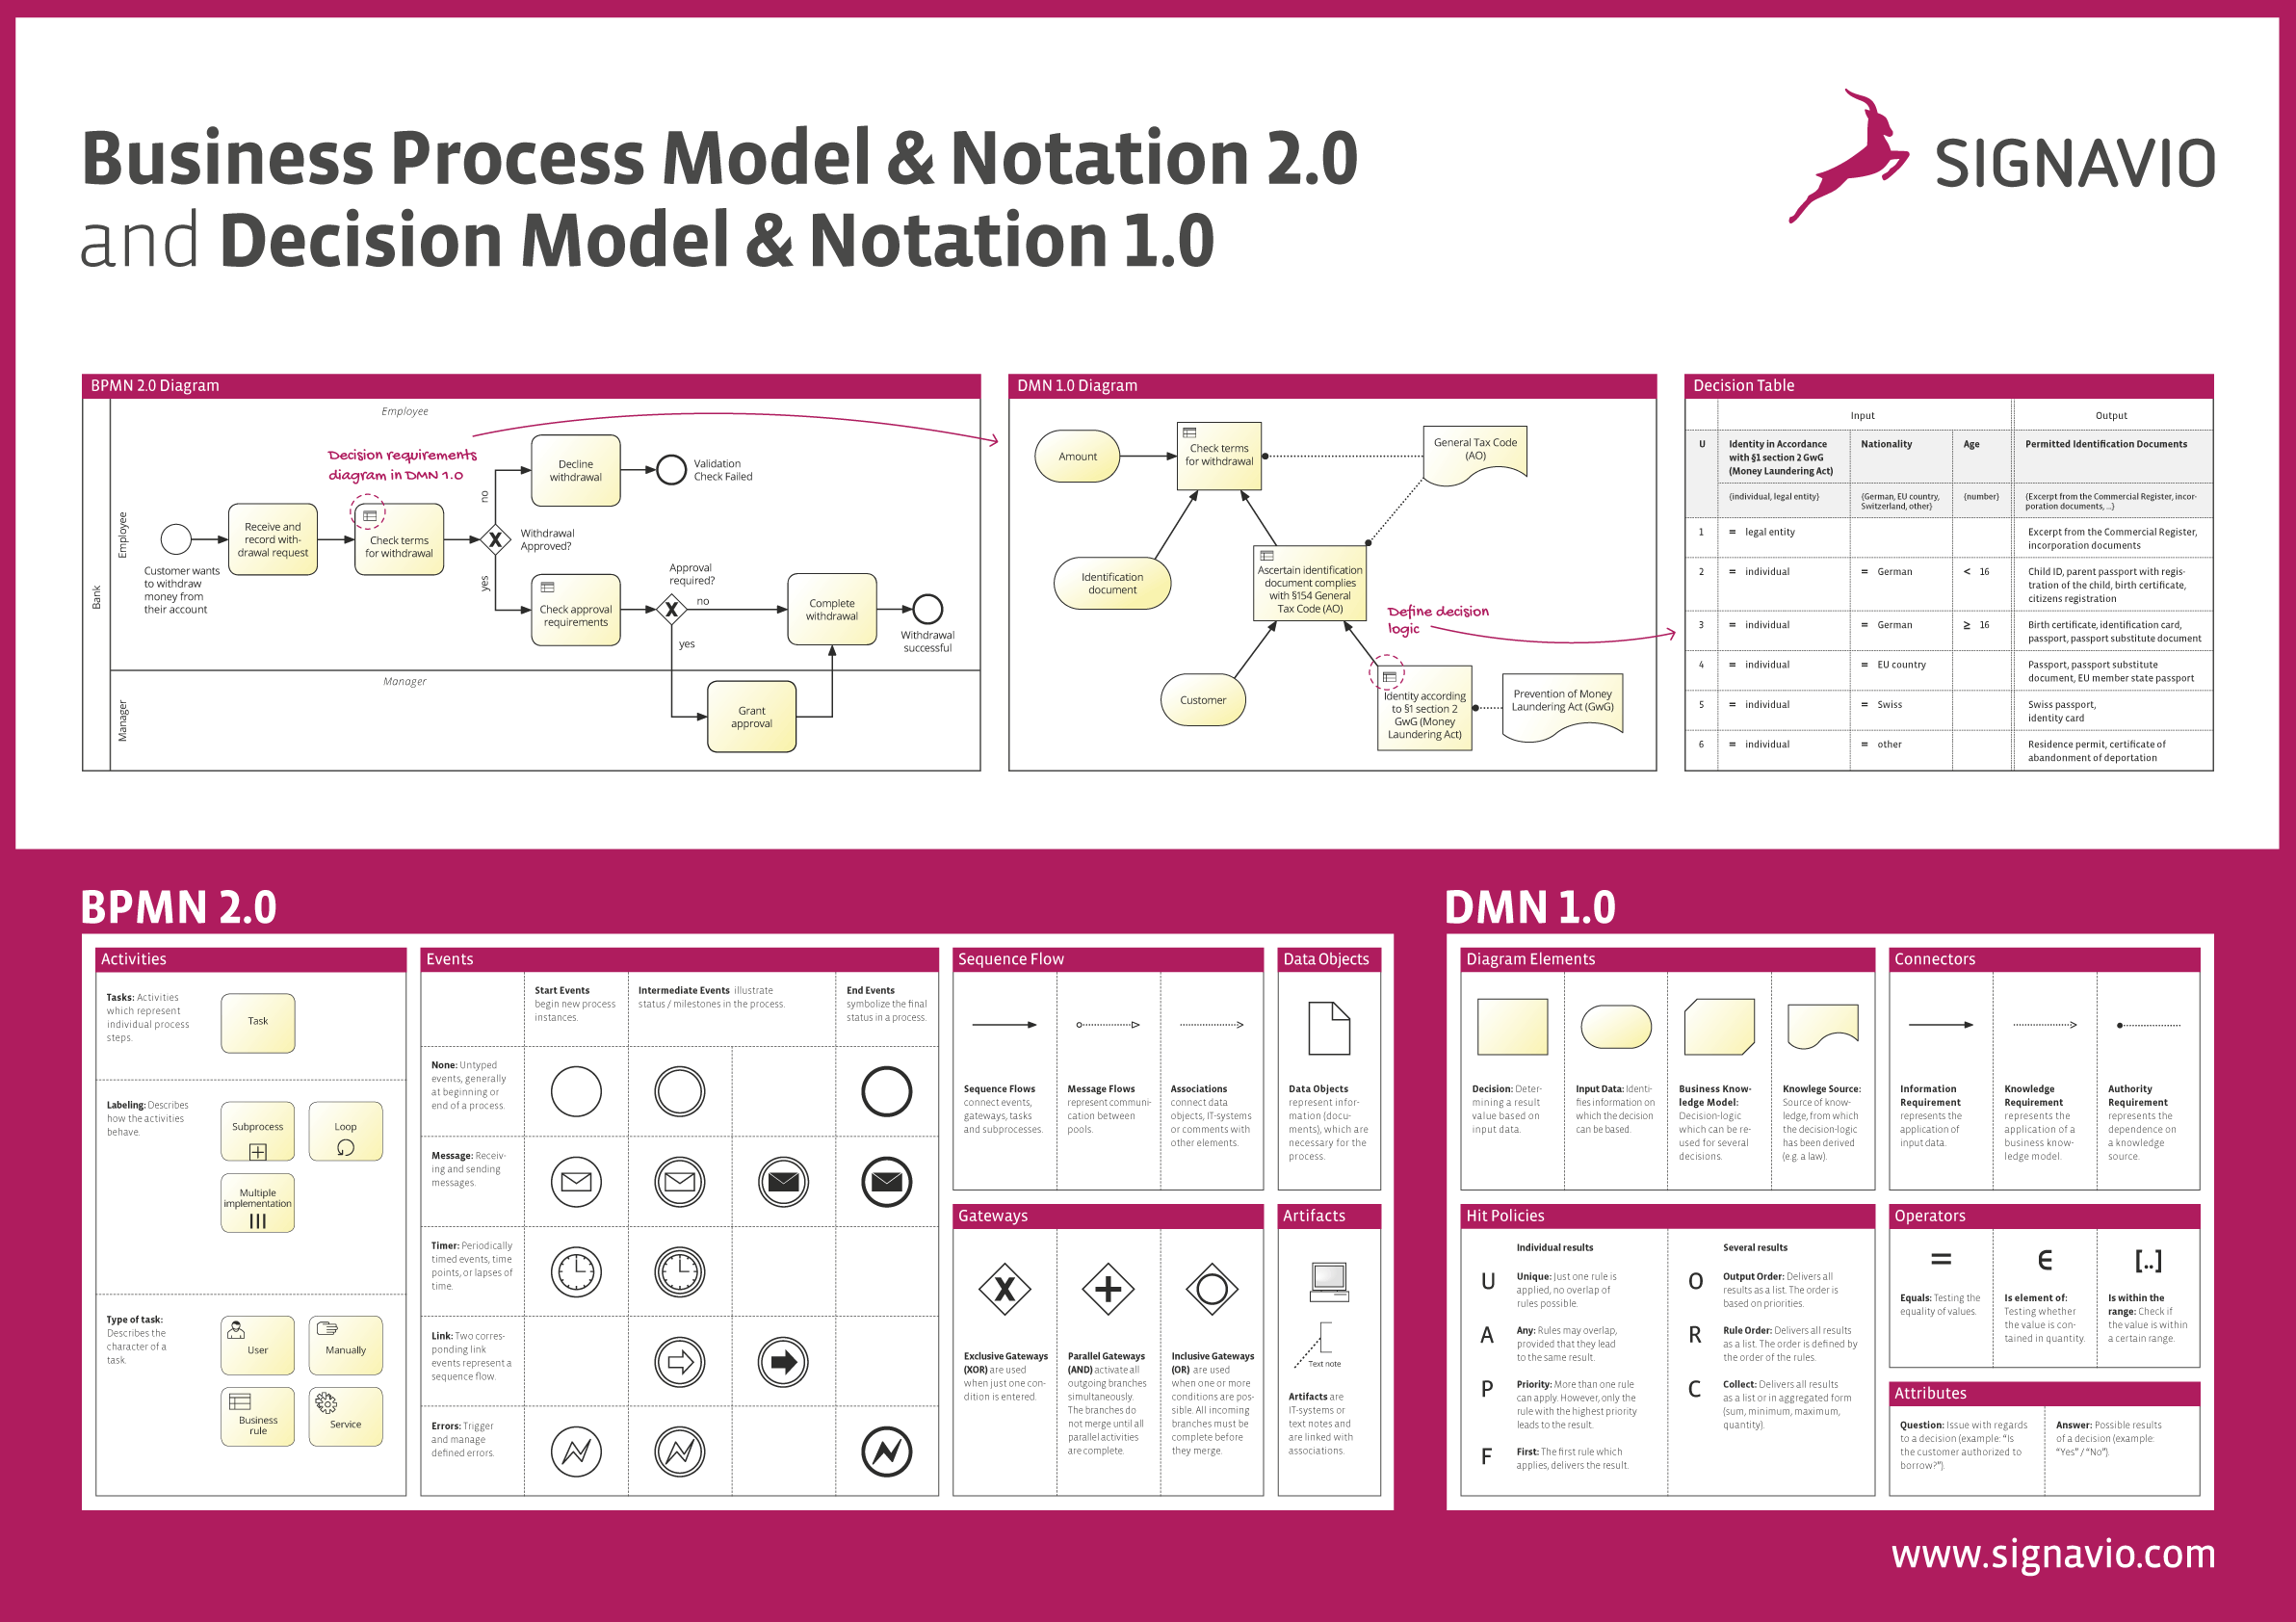 Preview Business Process Model & Notation 2.0 and Decision Model & Notation 1.0 Poster